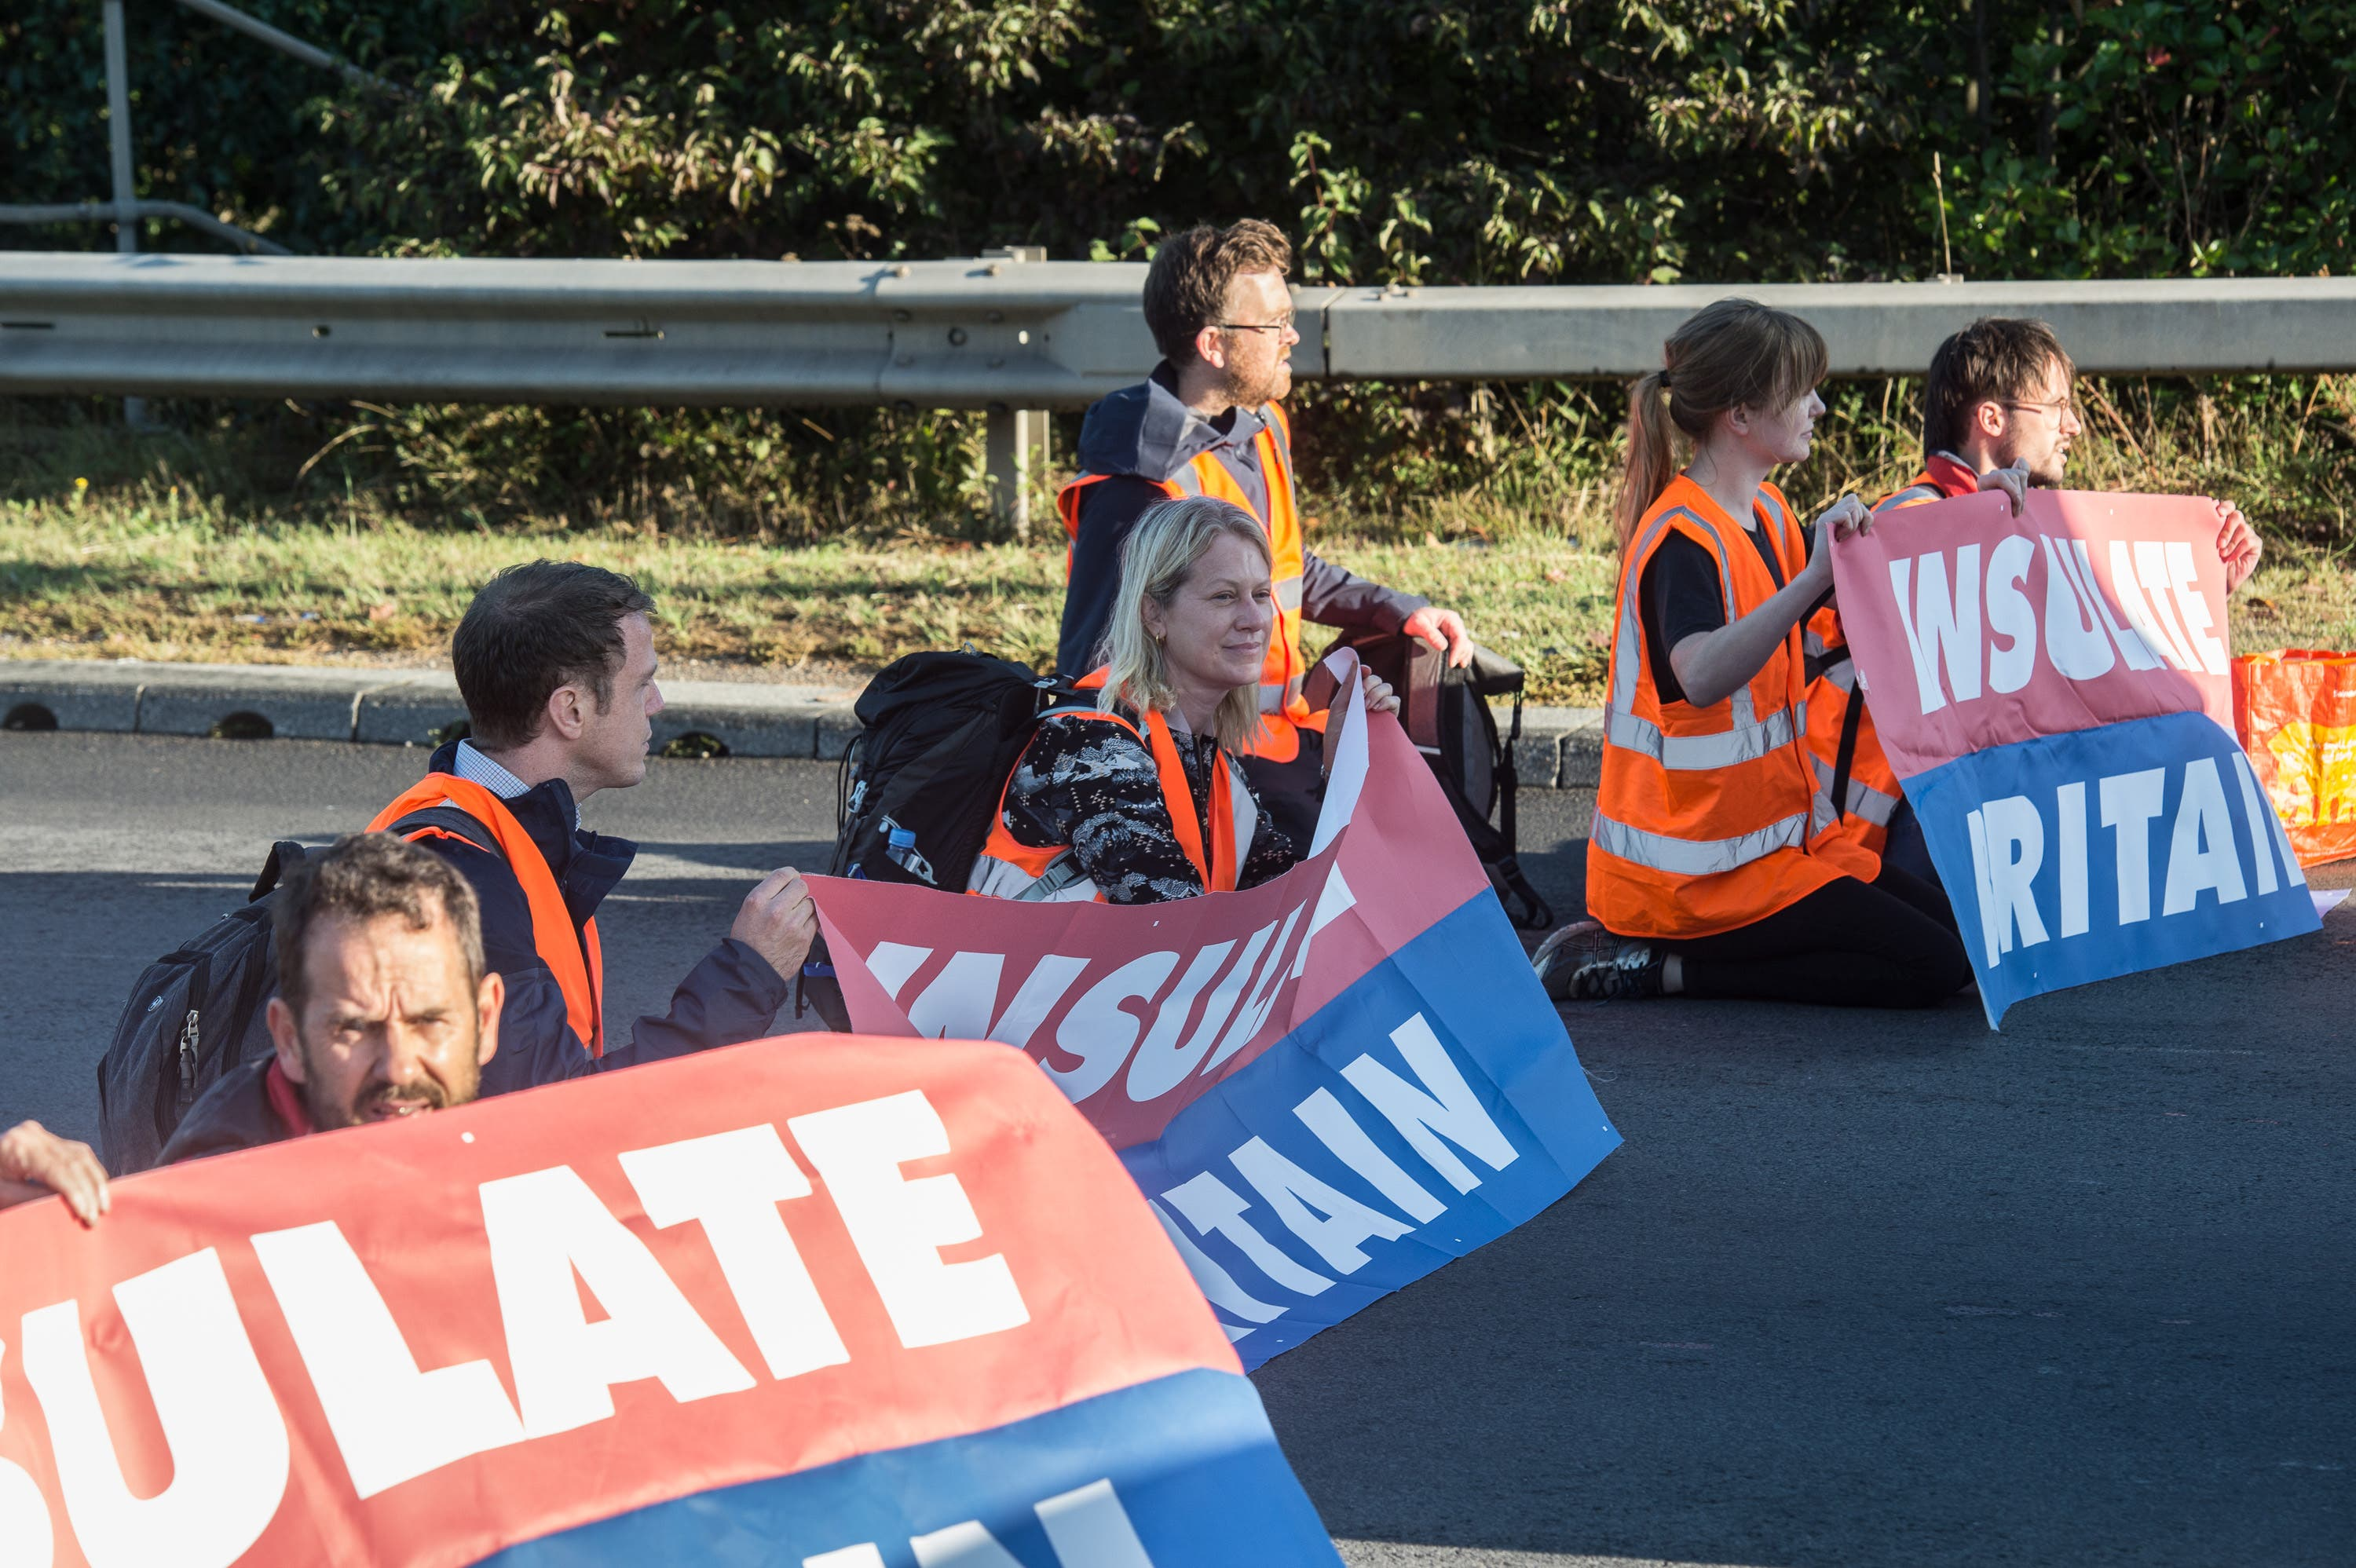 Climate campaigners hurting their own cause with motorway blockades, says Boris Johnson